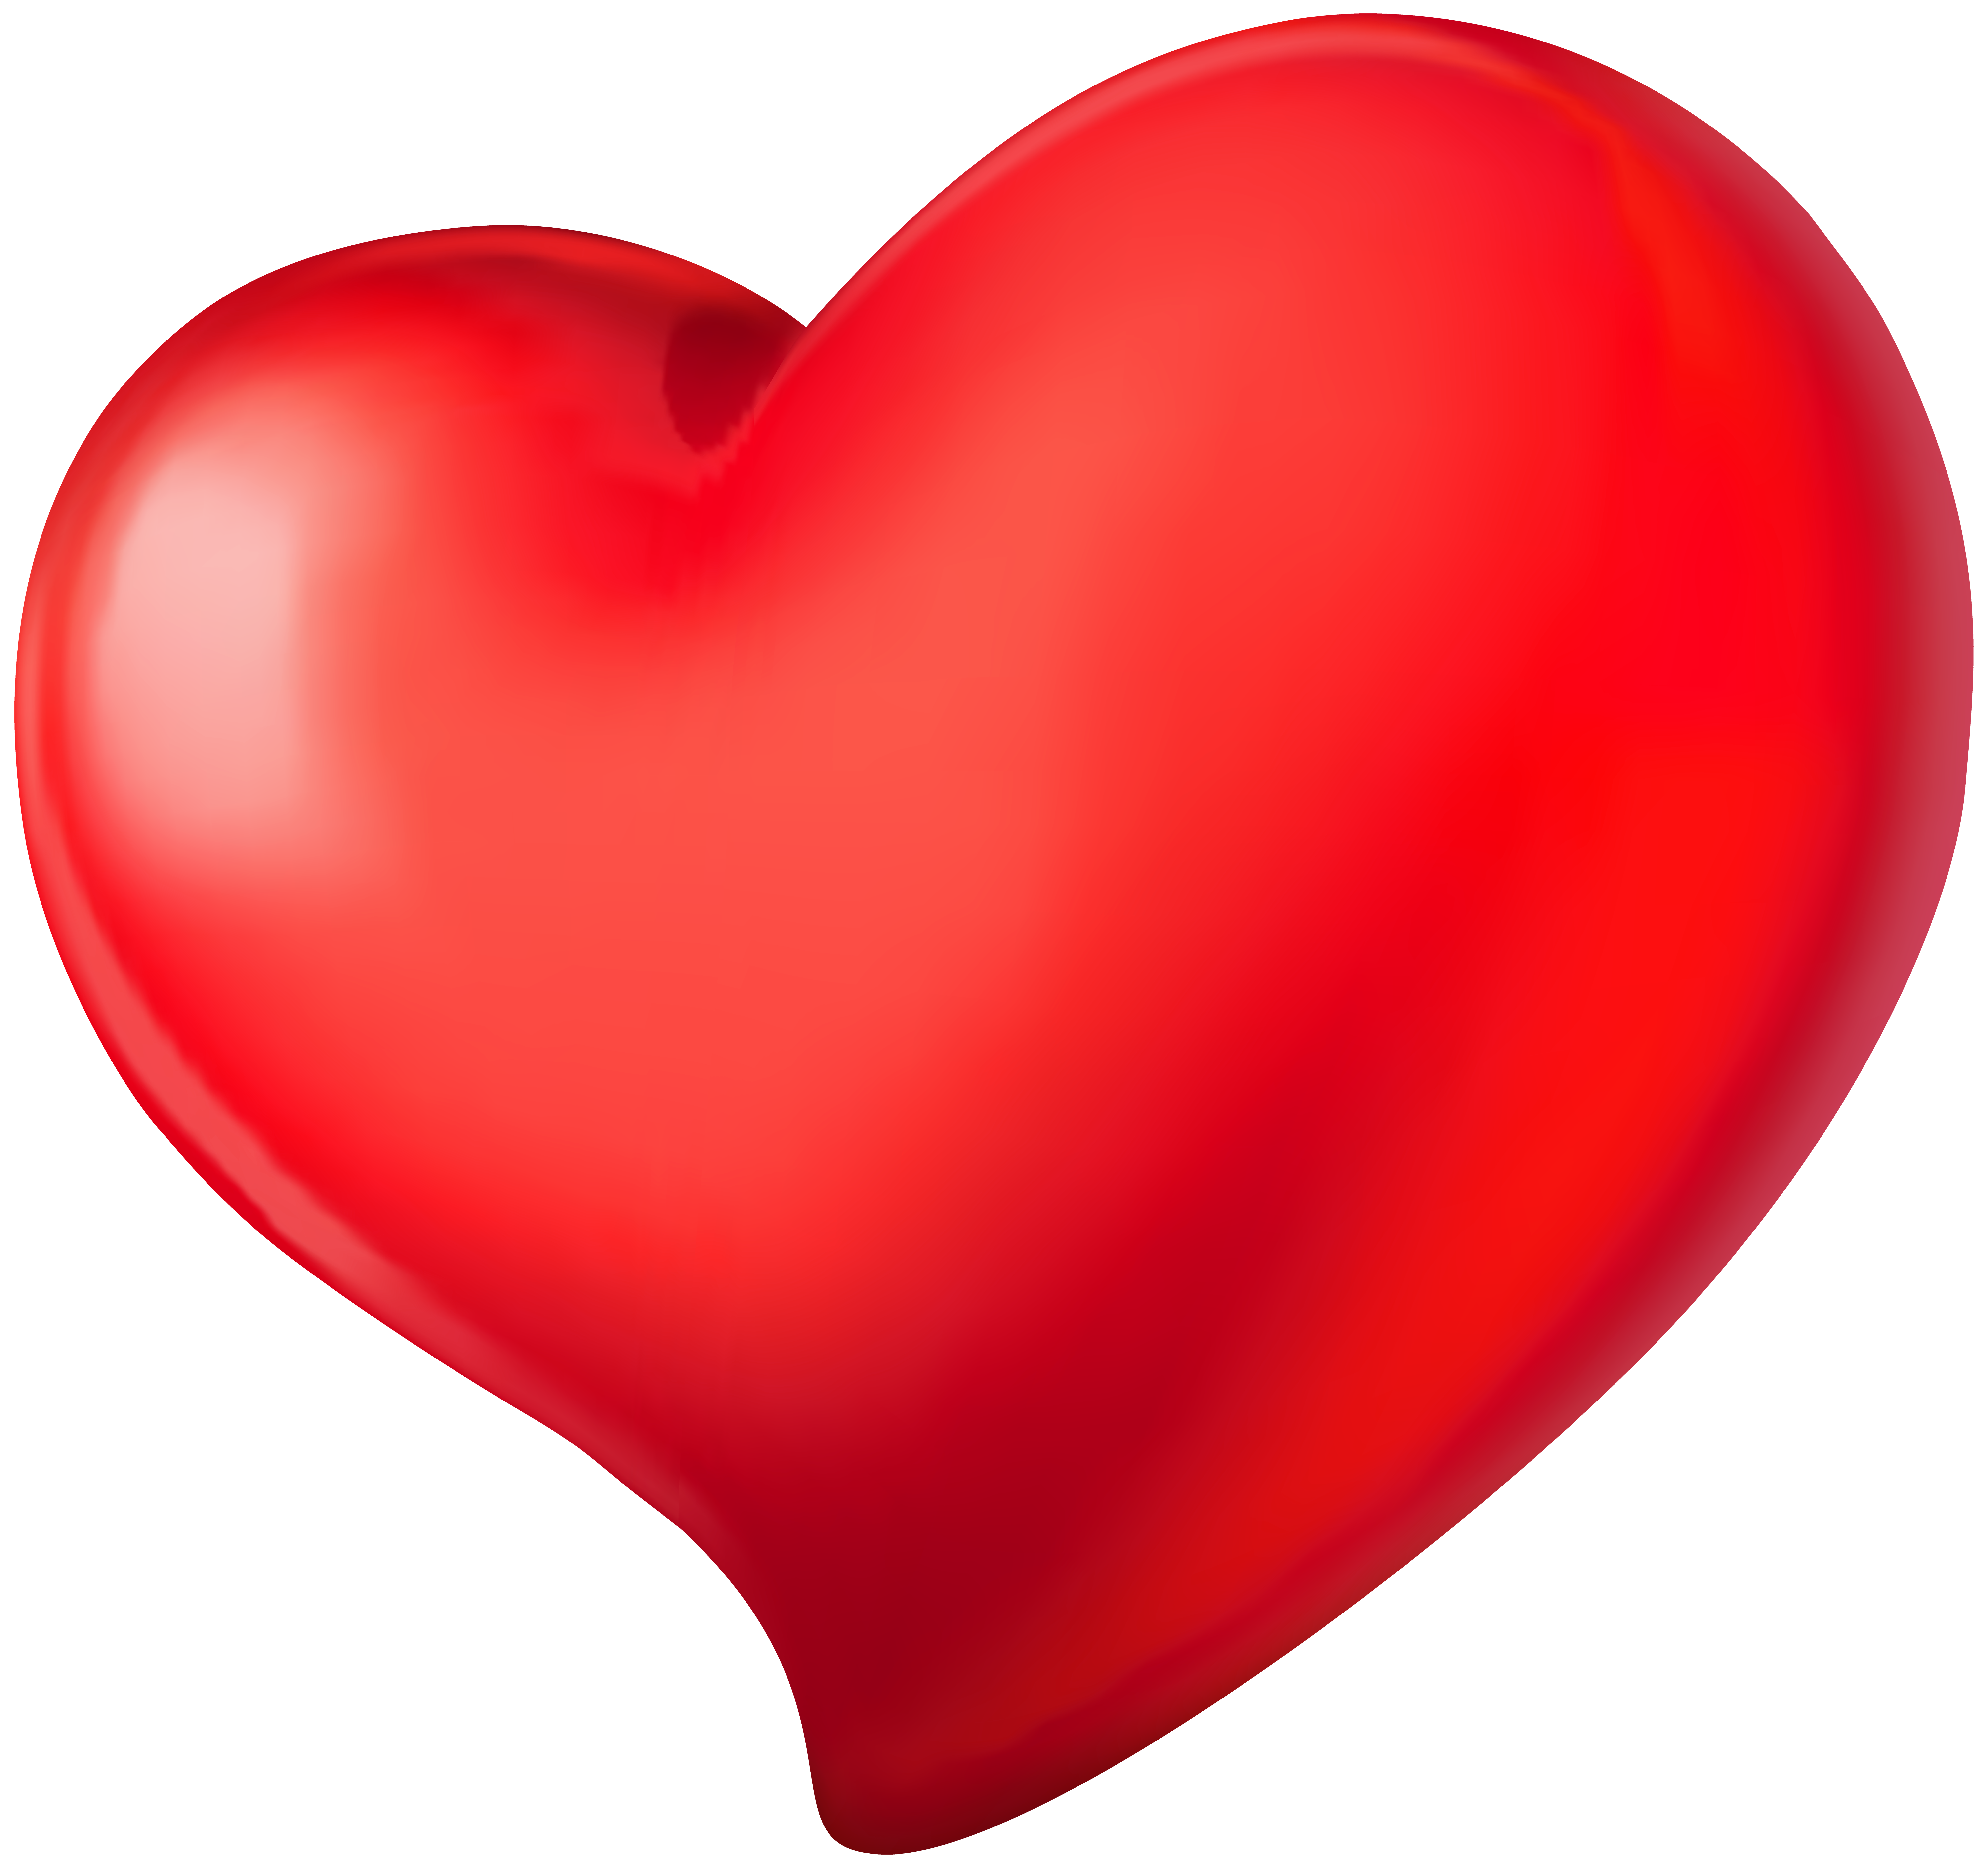 Heart clipart for kids picture free download Heart Red Transparent PNG Clip Art Image   Gallery Yopriceville ... picture free download